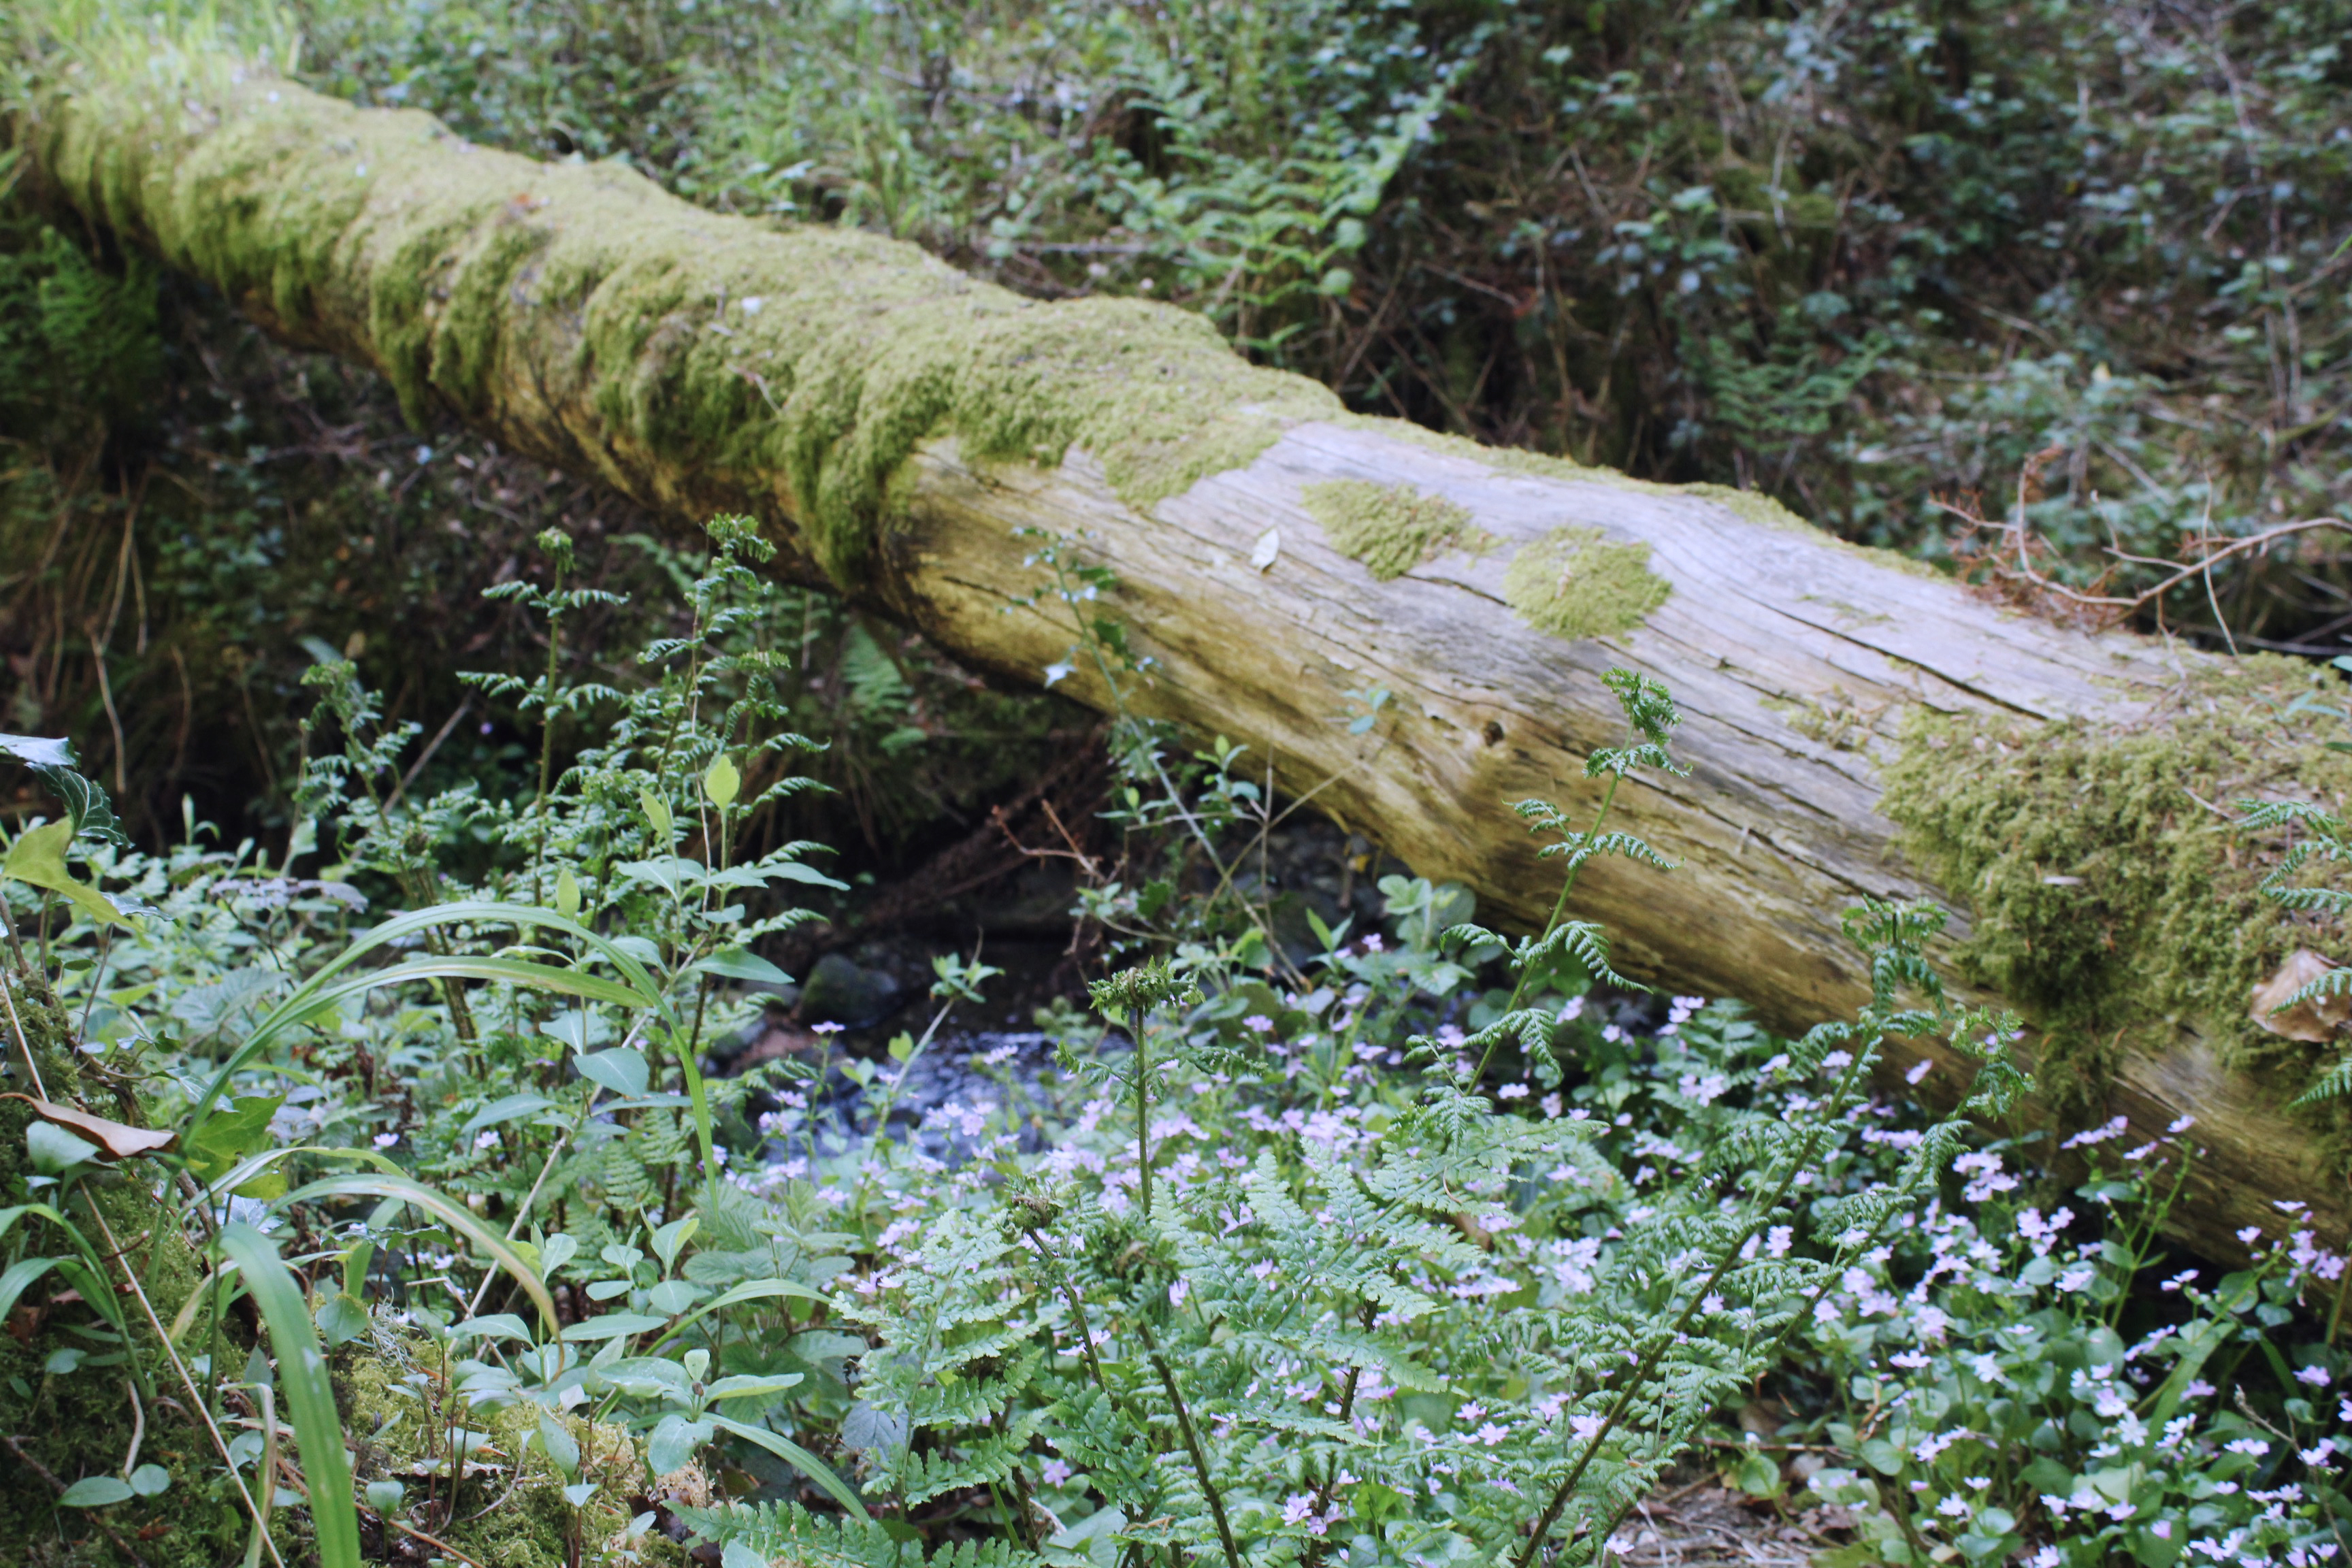 Wildflowers and moss covered logs on the forest floor at Lydford Gorge